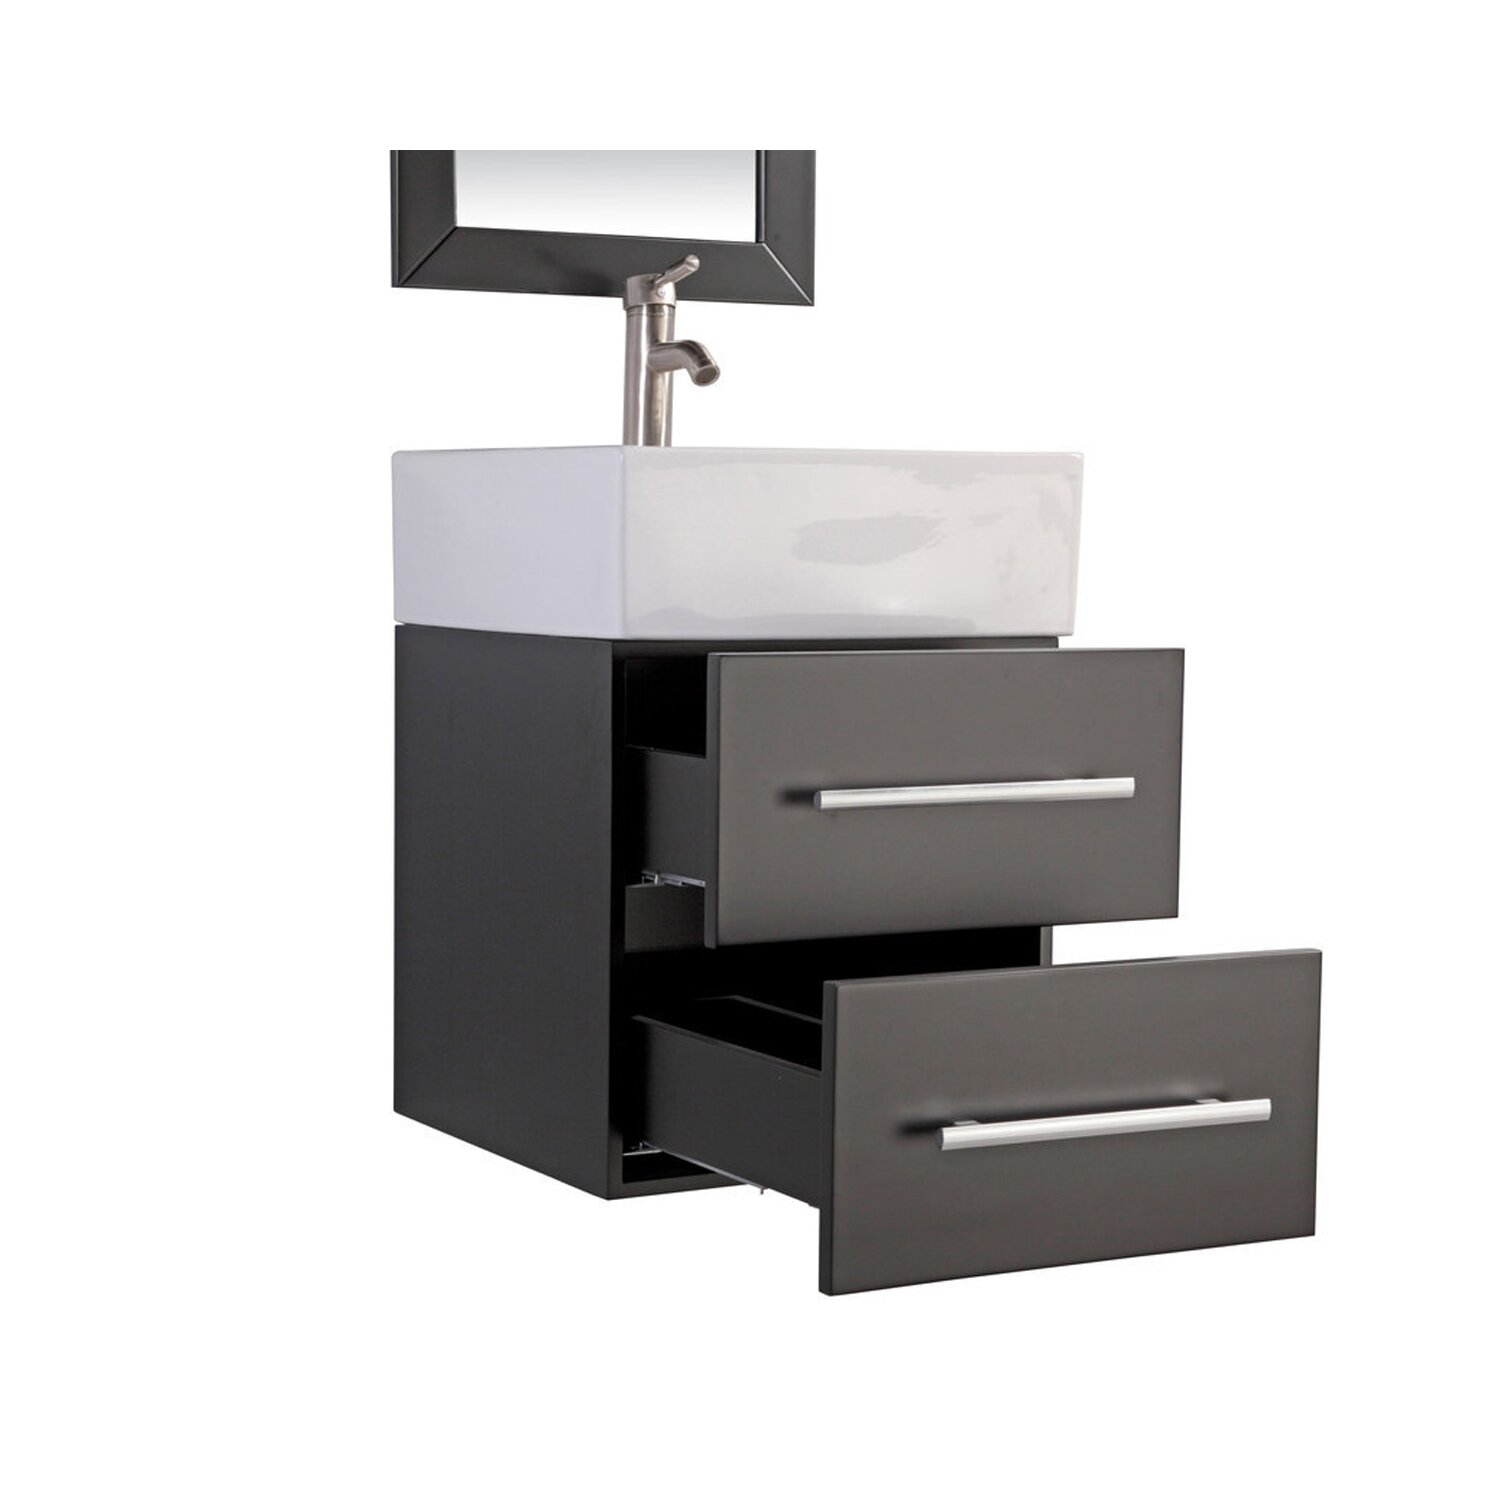 Mtdvanities Nepal 18 Single Sink Wall Mounted Bathroom